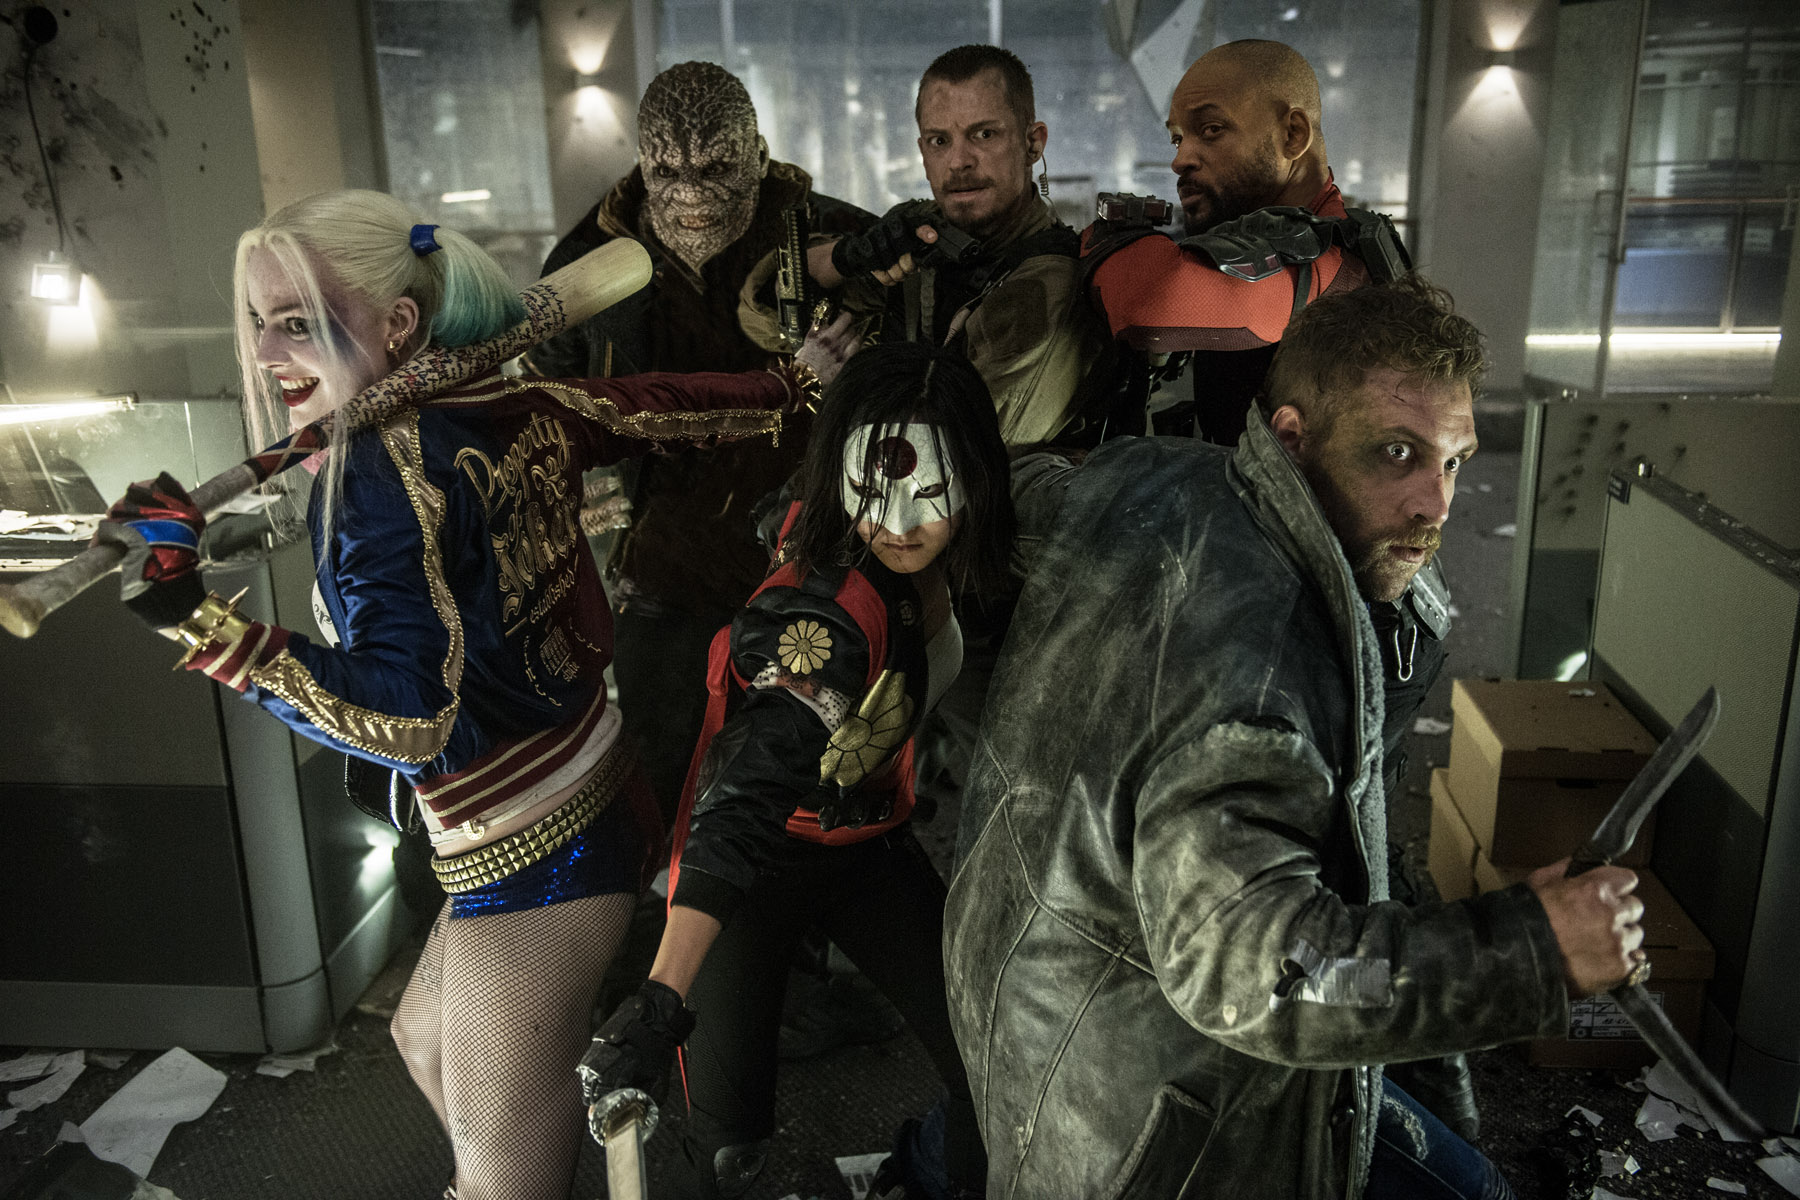 David Ayer posts a sweet new Suicide Squad poster